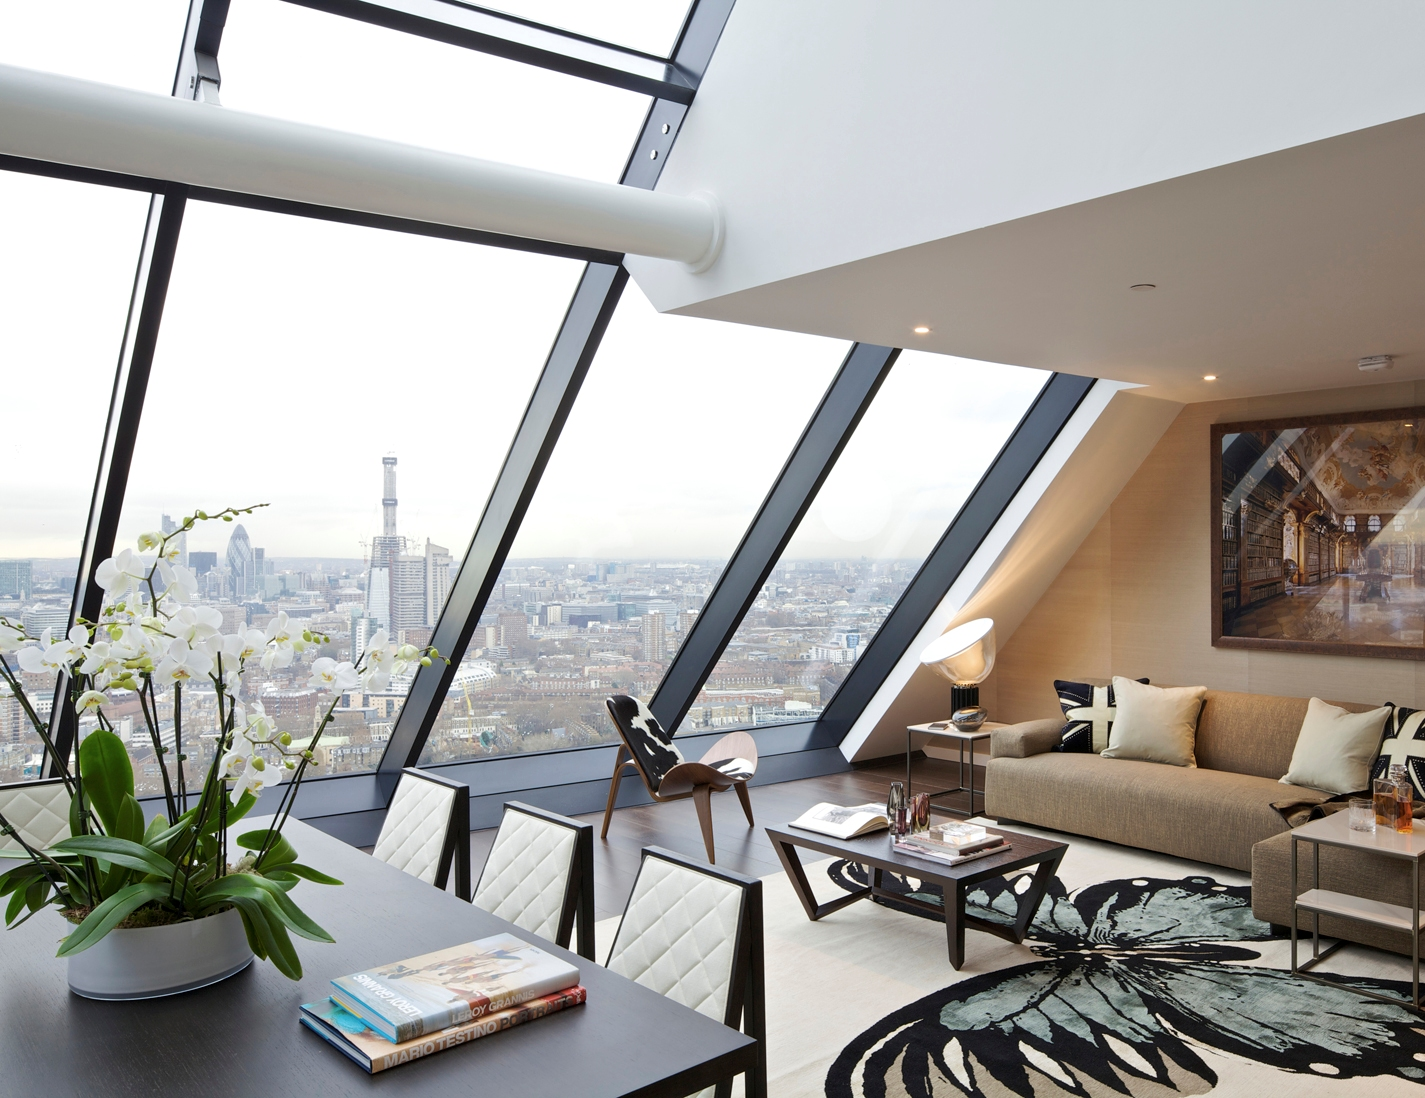 Penthouse Loft Living contemporary-living-room